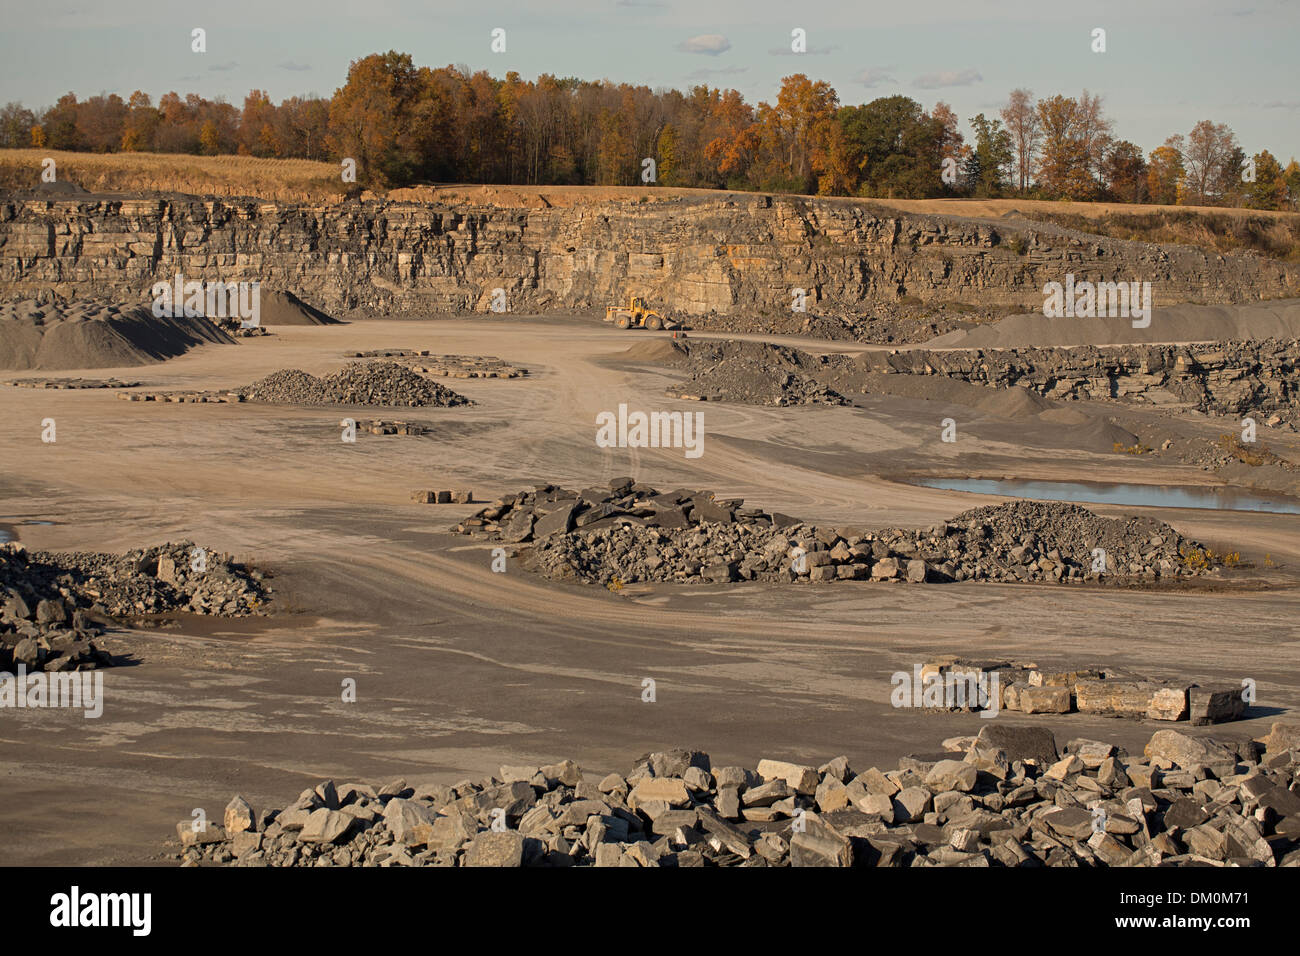 Stone quarry, mining Onandaga limestone, New York, Marcellus shale seen as upper layer - Stock Image